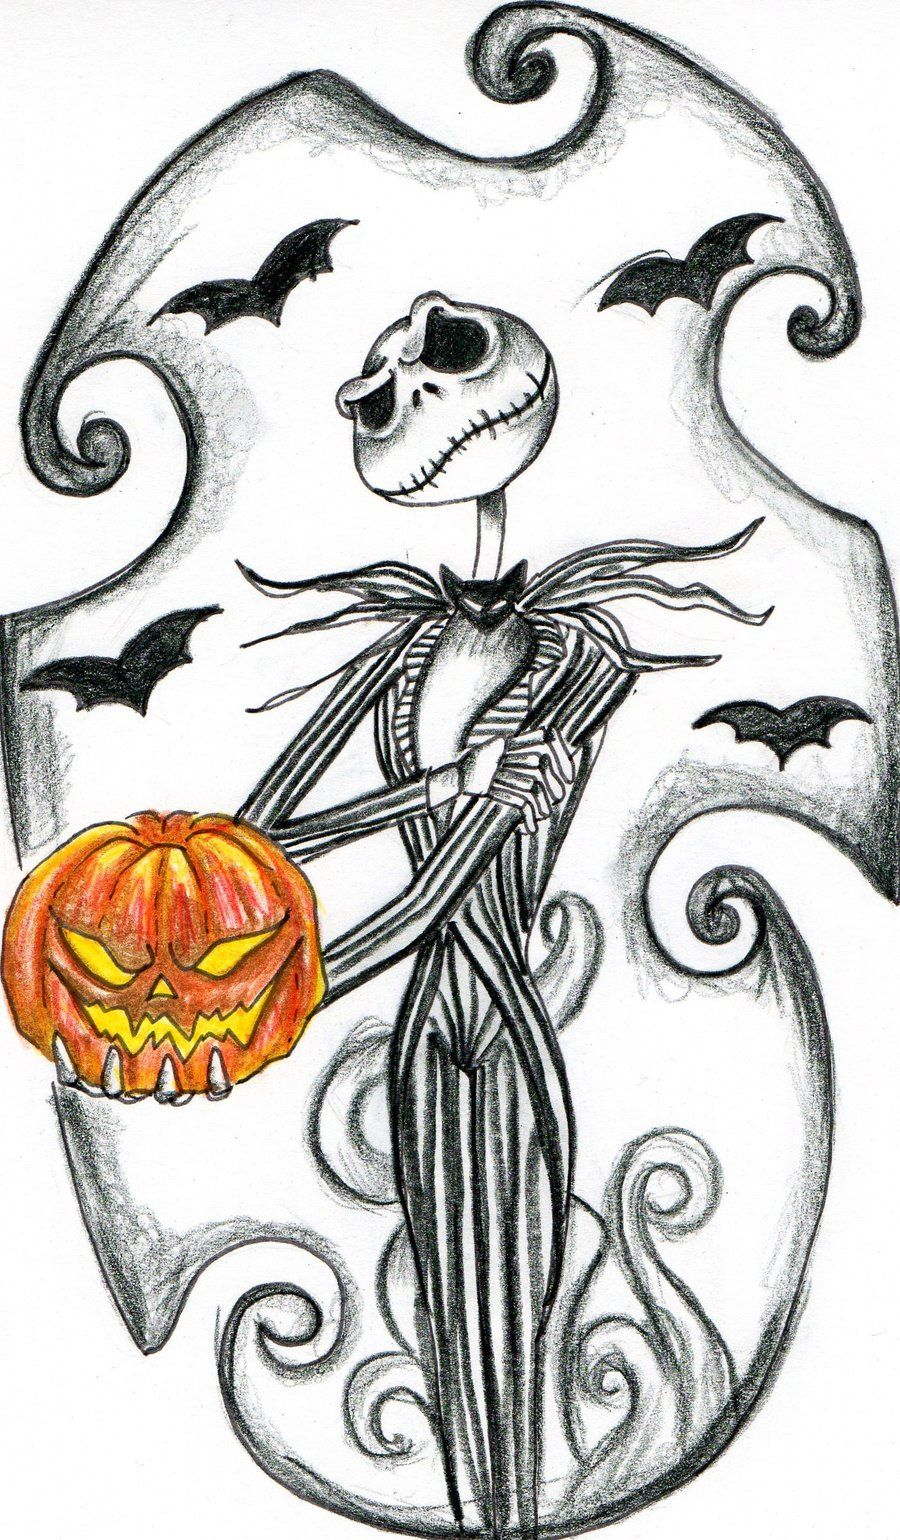 Jack Skellington Tattoo Design (With images) | Nightmare before ...